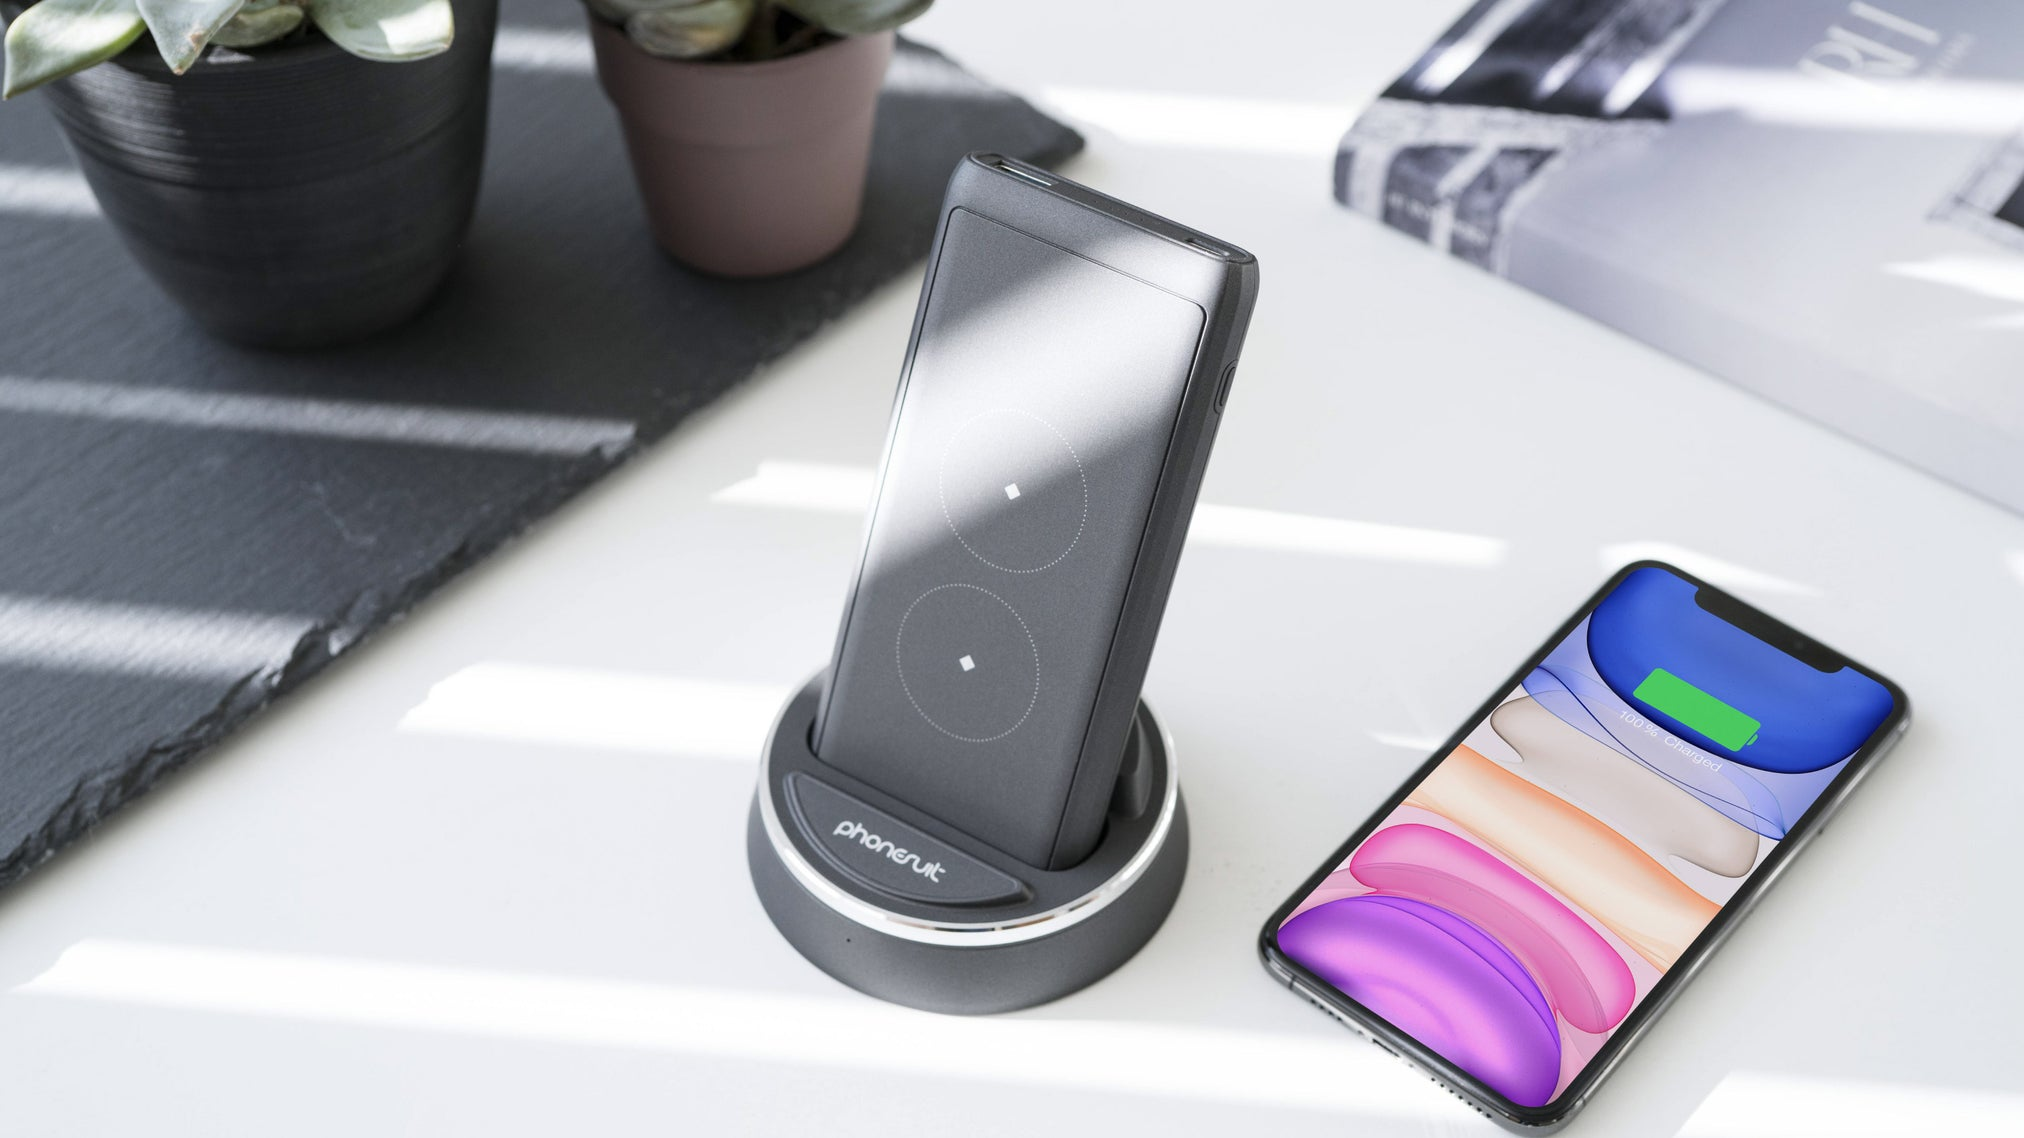 Energy Core Wireless Battery Pack & Dock for iPhone, Samsung & More